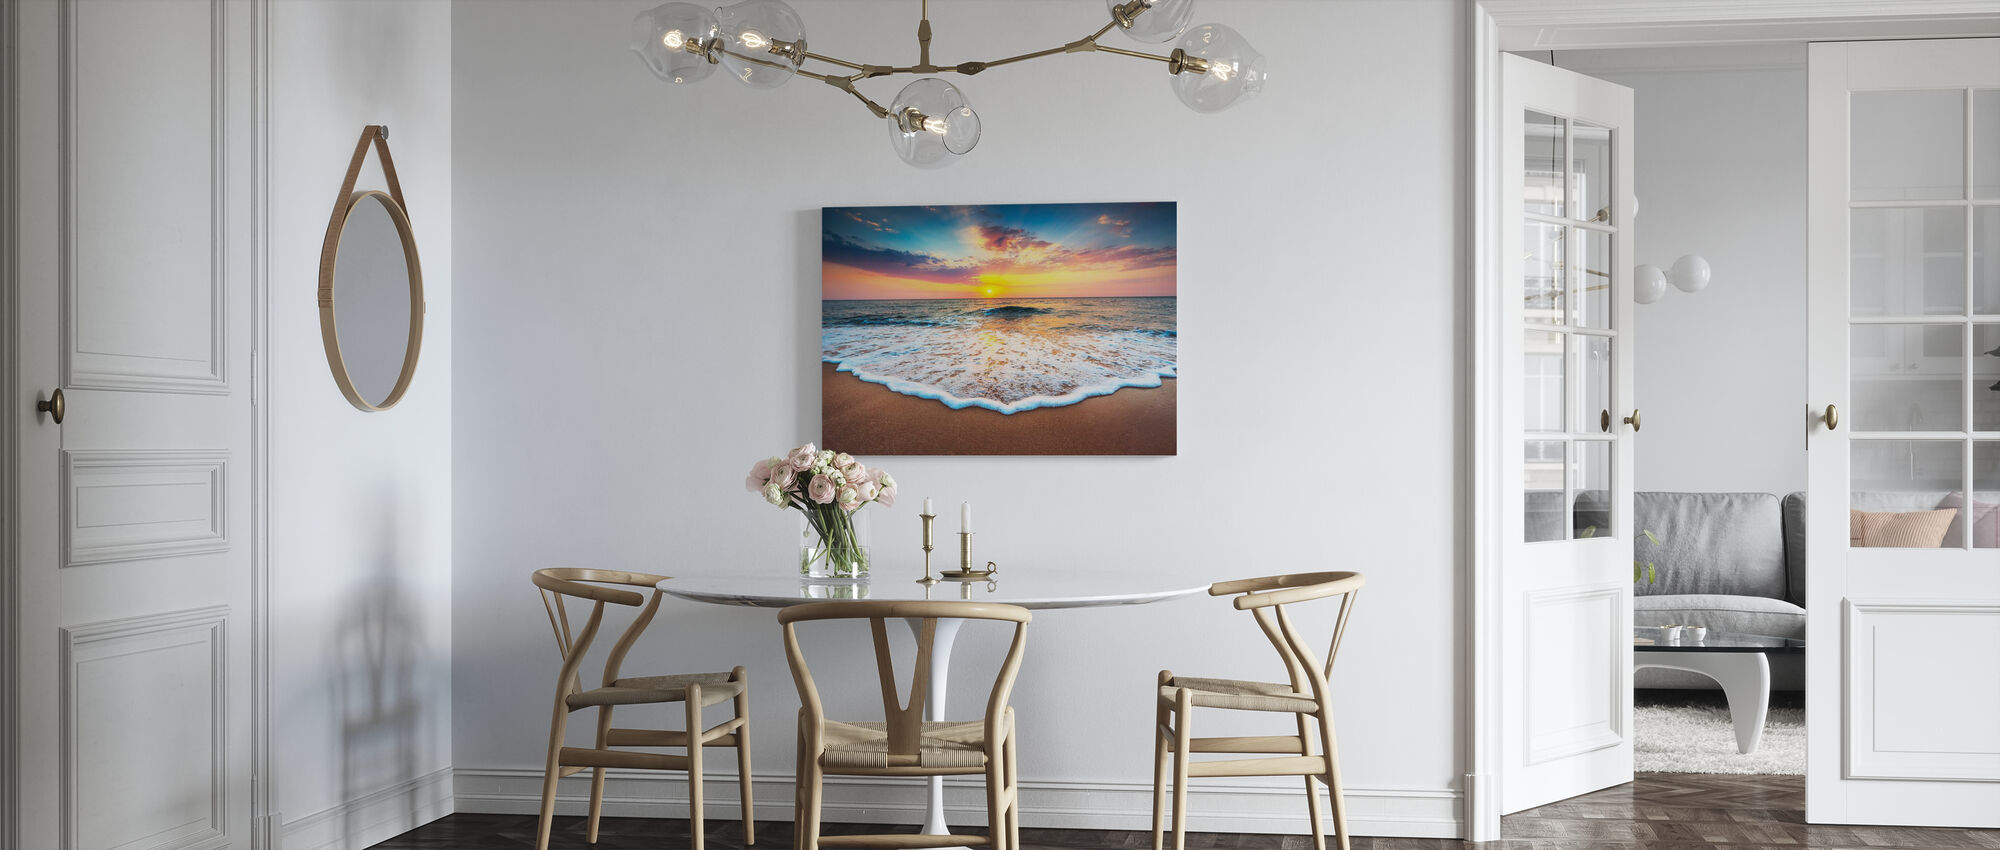 Sunrise and Dreams - Canvas print - Kitchen